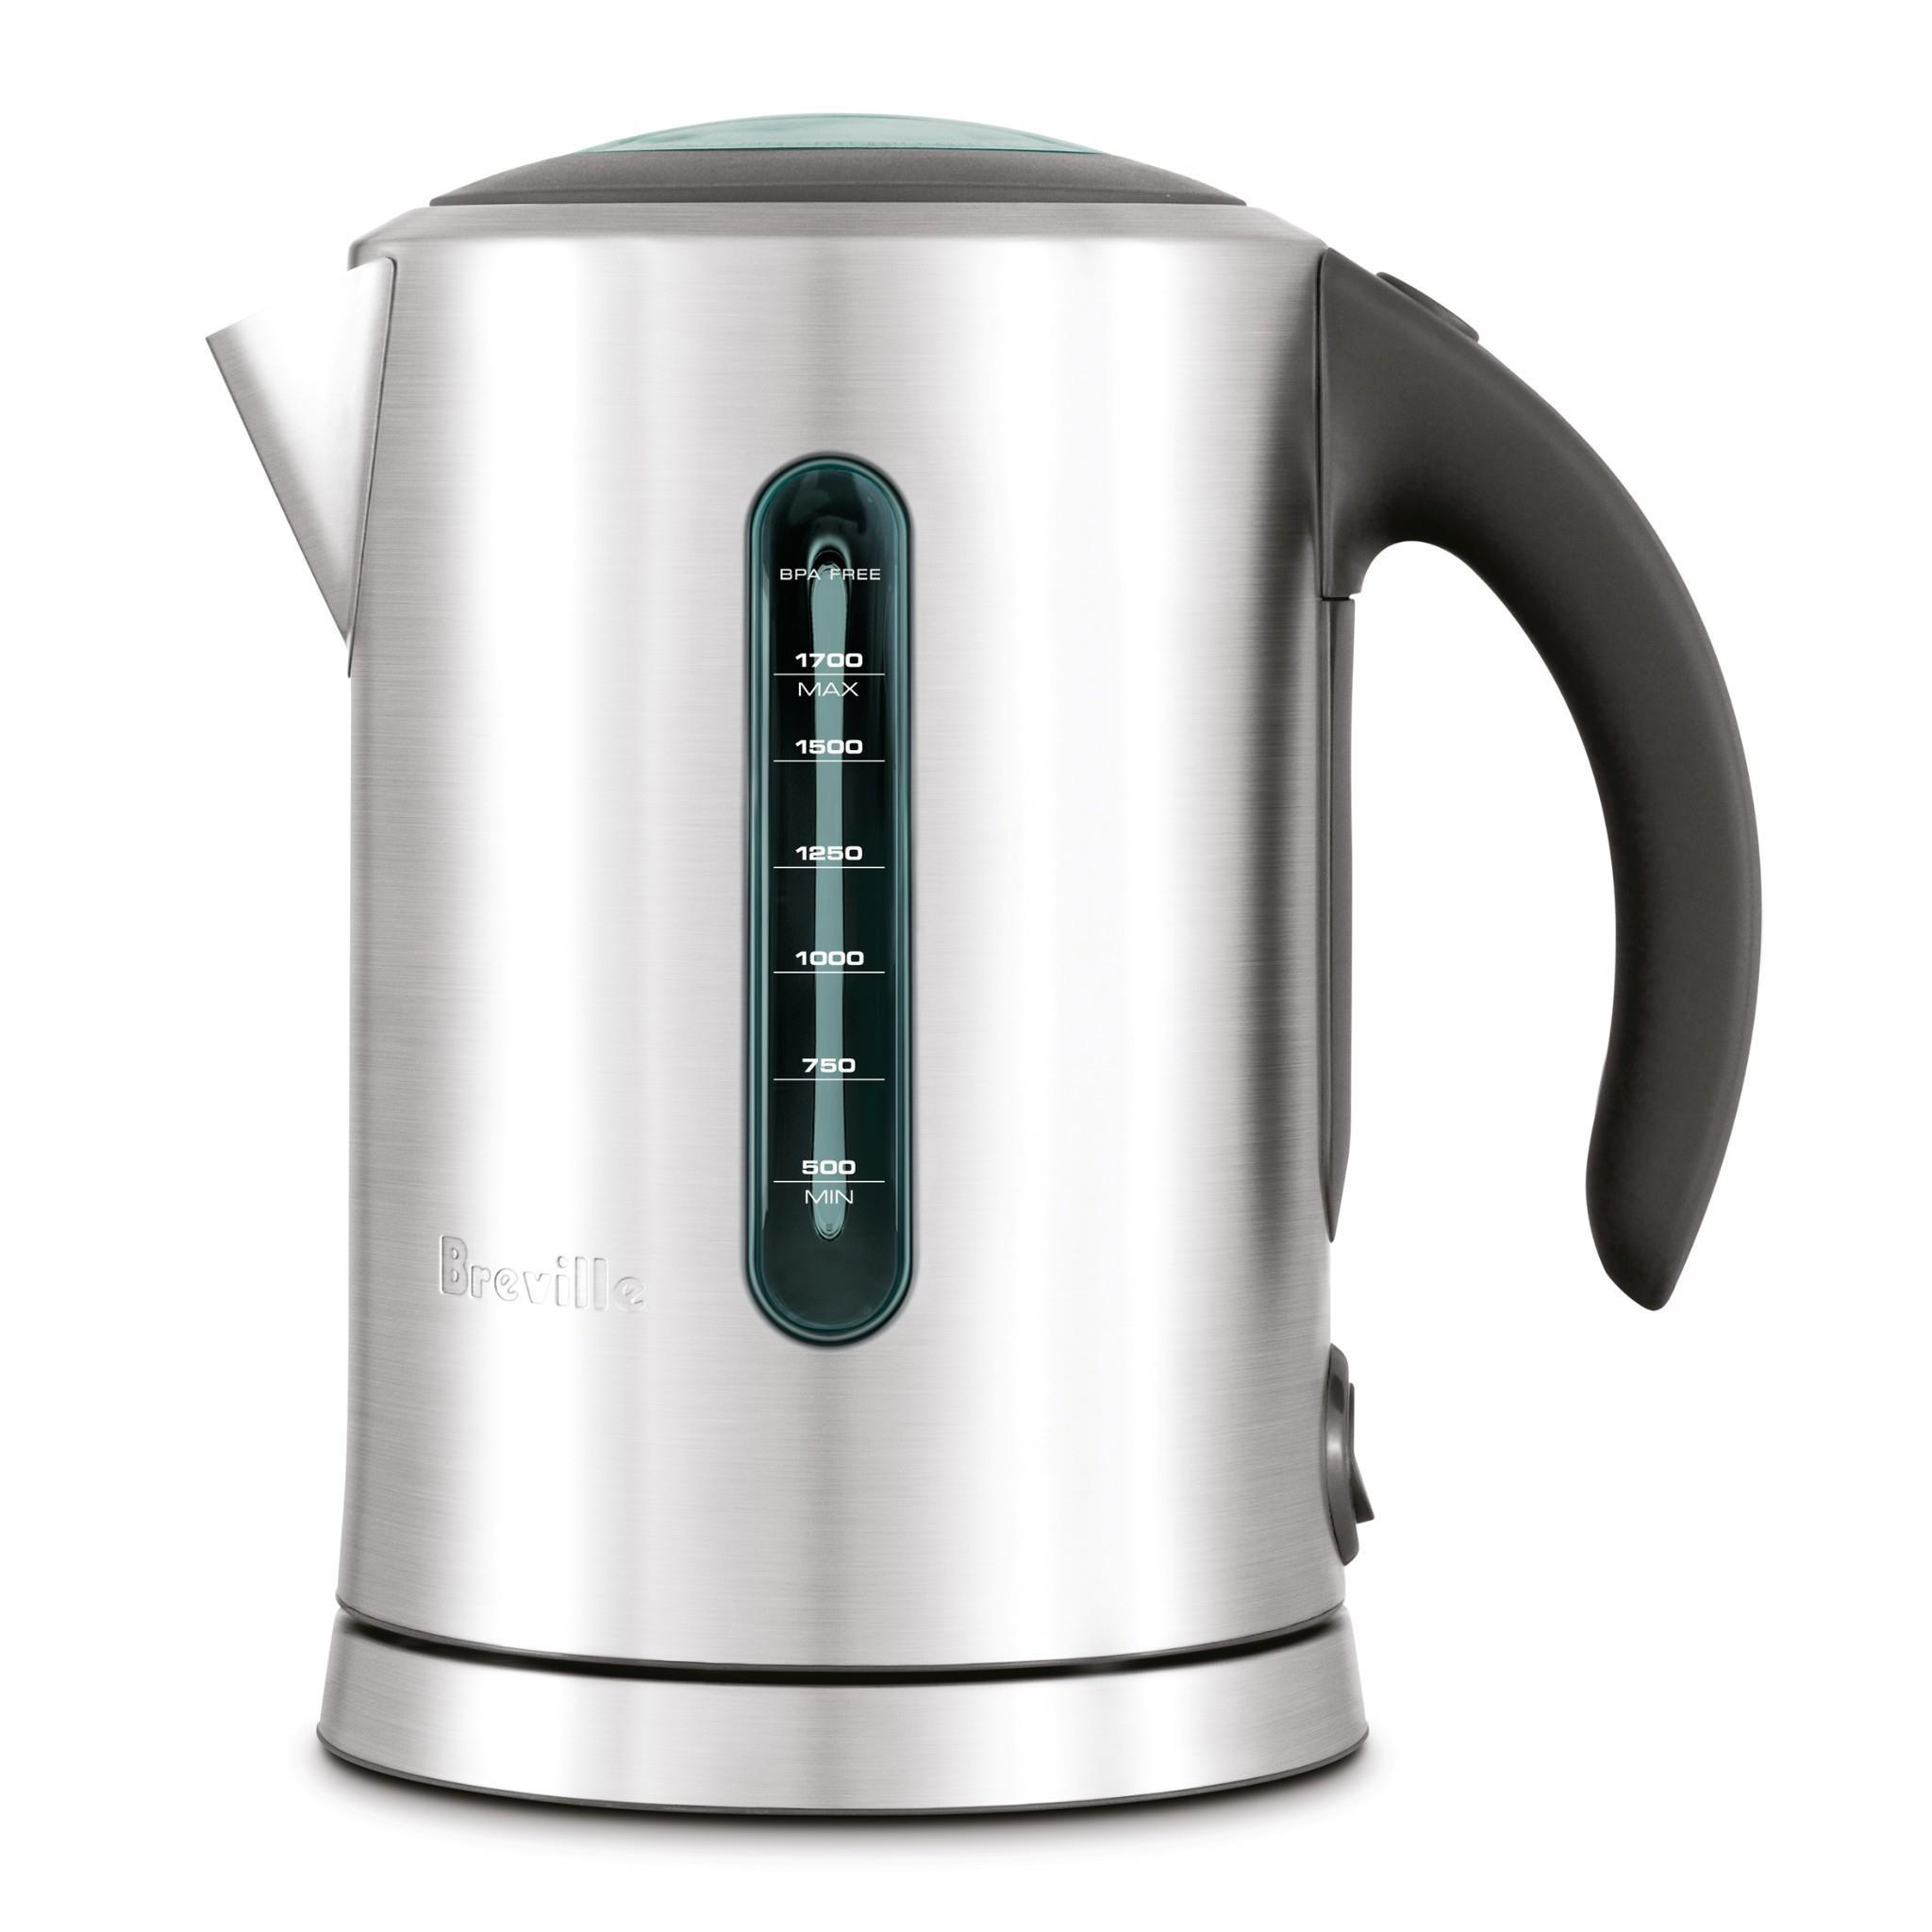 Breville BKE700 The Soft Open Kettle Pro